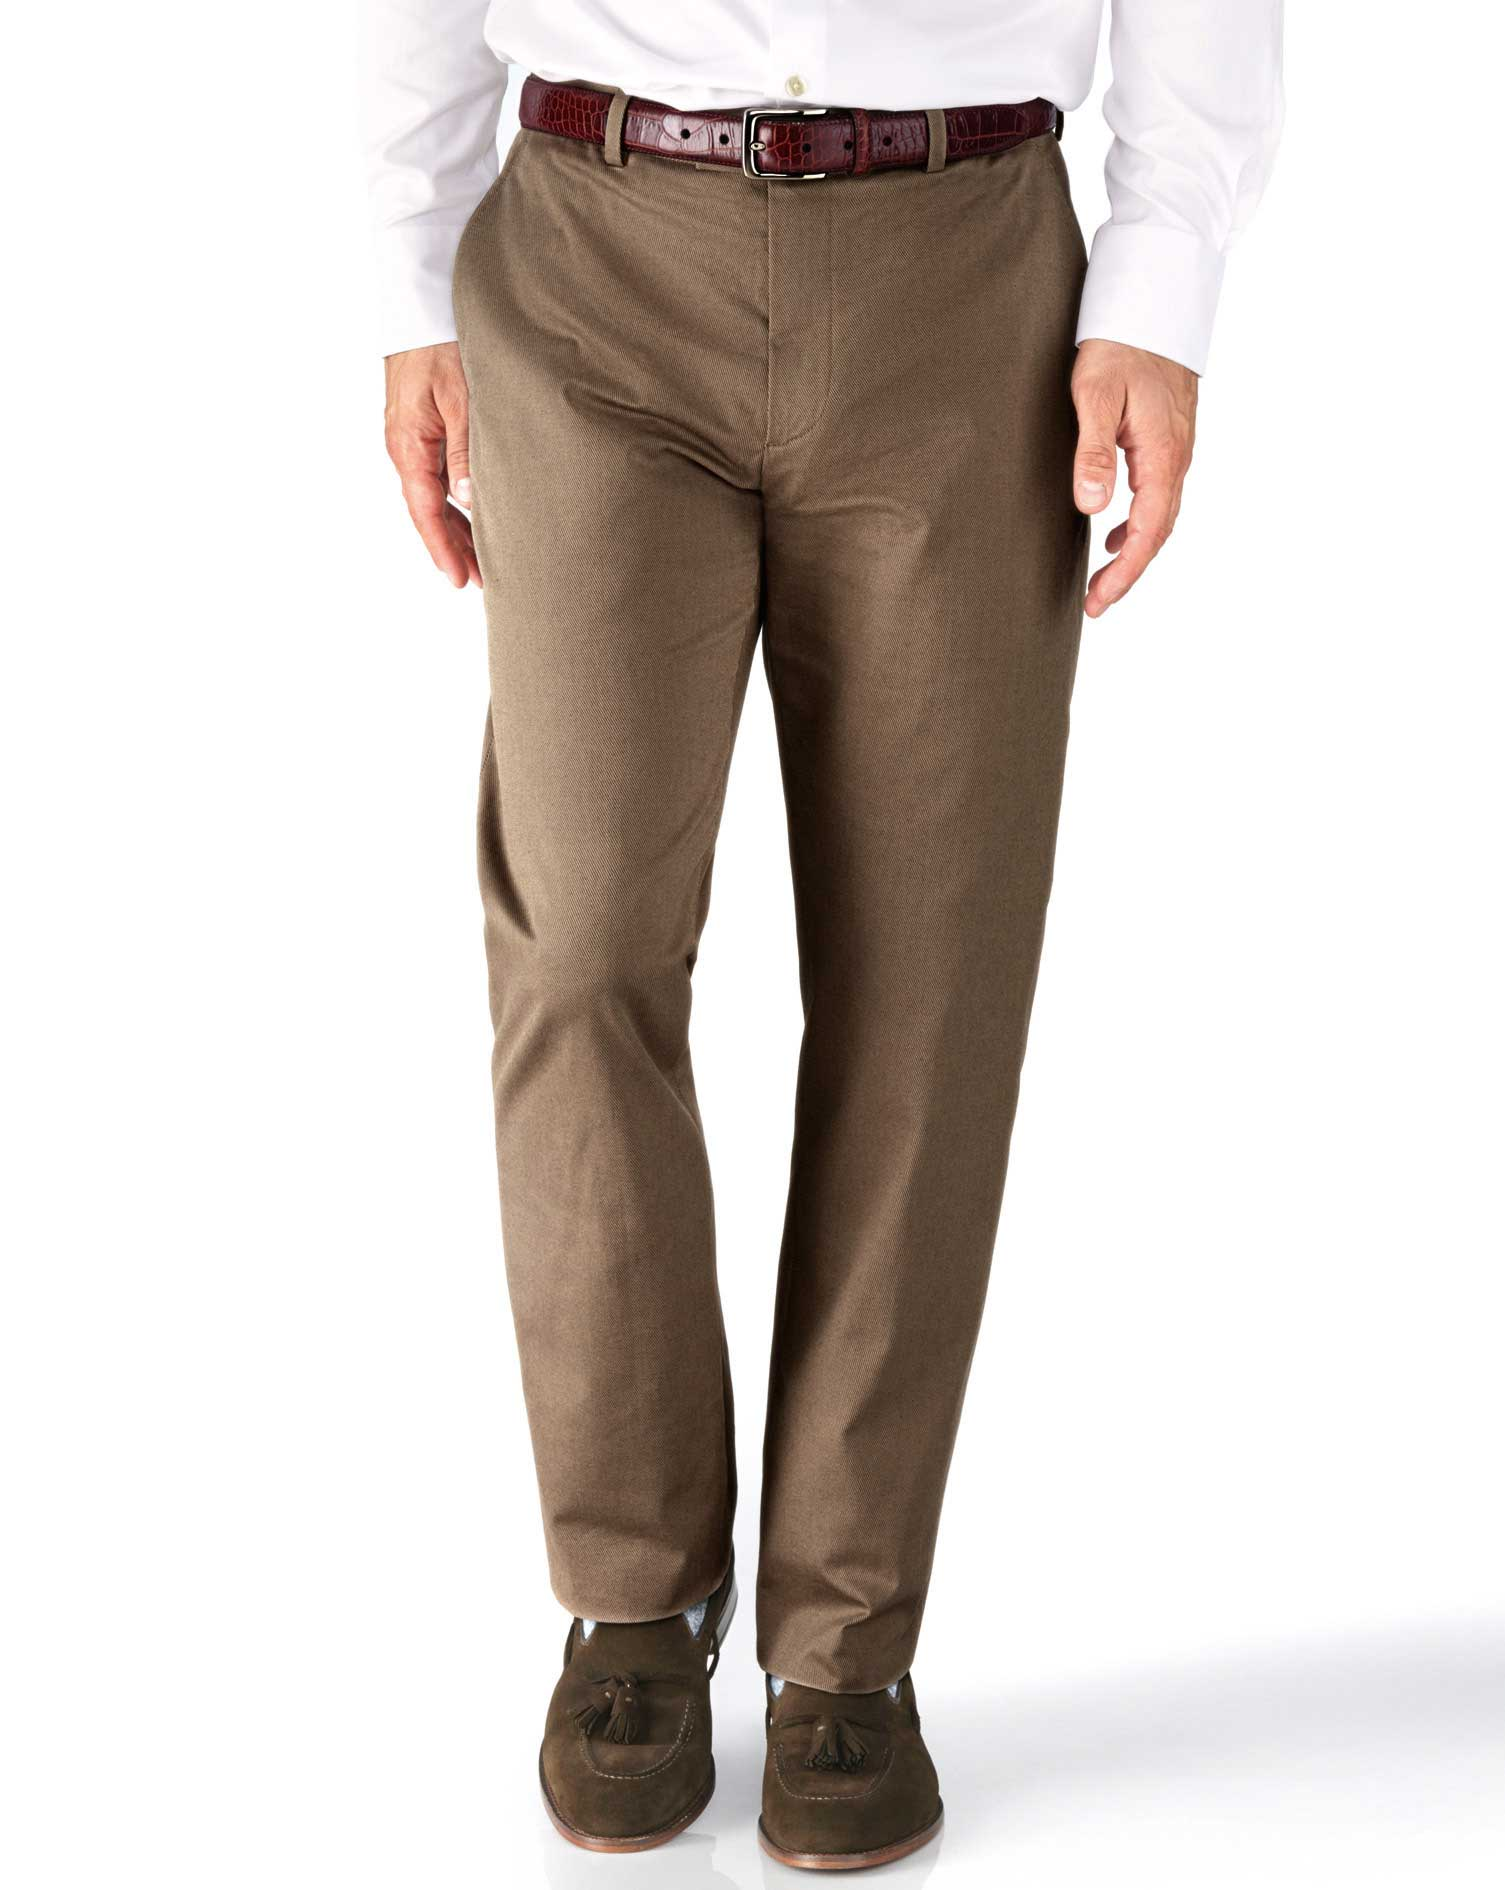 Tan Slim Fit Stretch Cavalry Twill Trousers Size W38 L32 by Charles Tyrwhitt